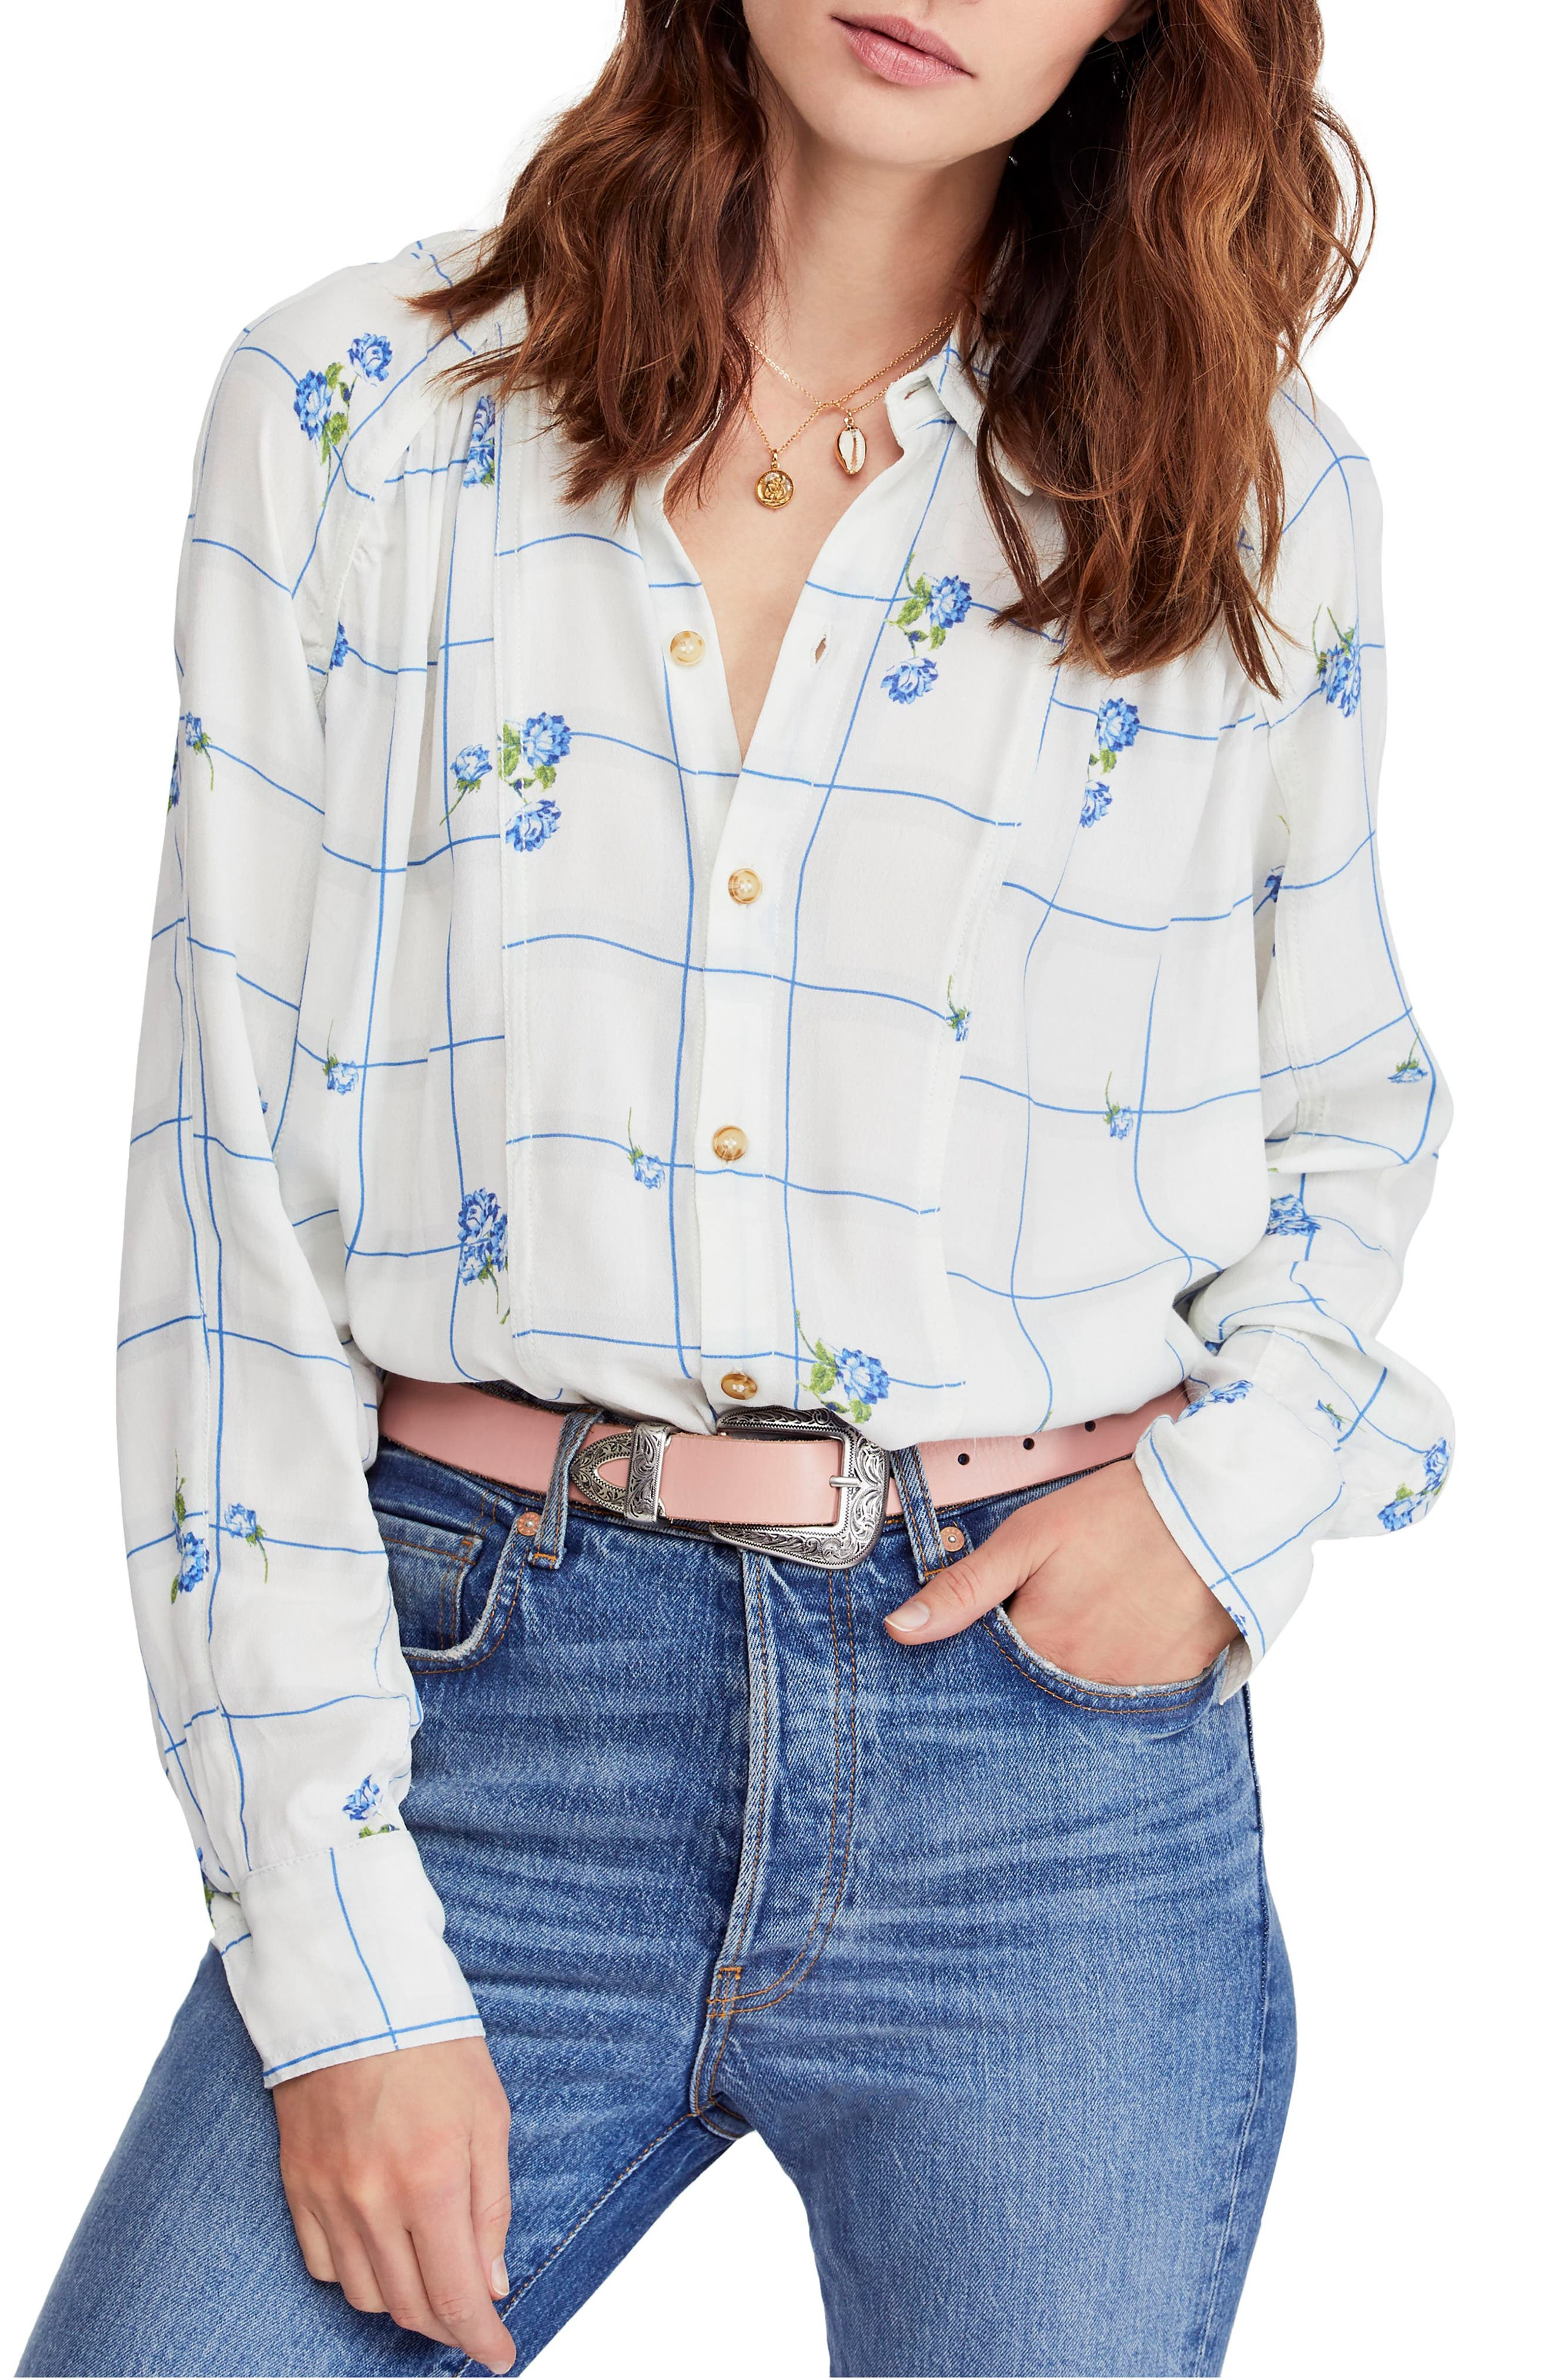 FREE PEOPLE, Window to My Heart Blouse, Main thumbnail 1, color, WHITE